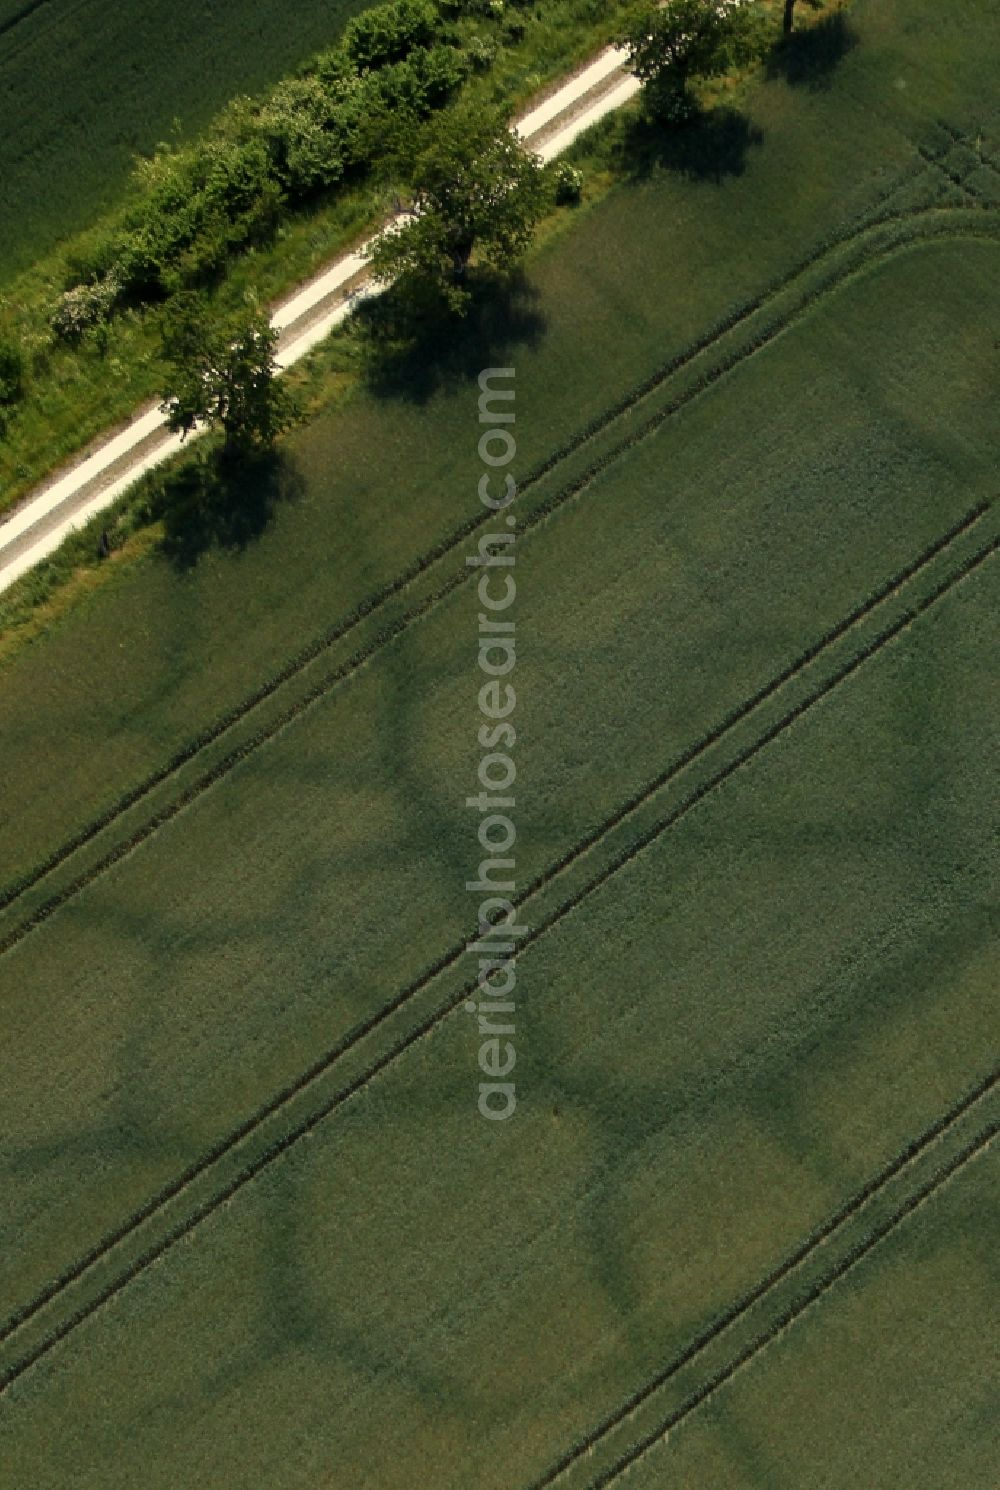 Aerial photograph Karsdorf - Vegetation structures on agricultural fields characterized by subterranean waterways in Karsdorf in the state Saxony-Anhalt, Germany